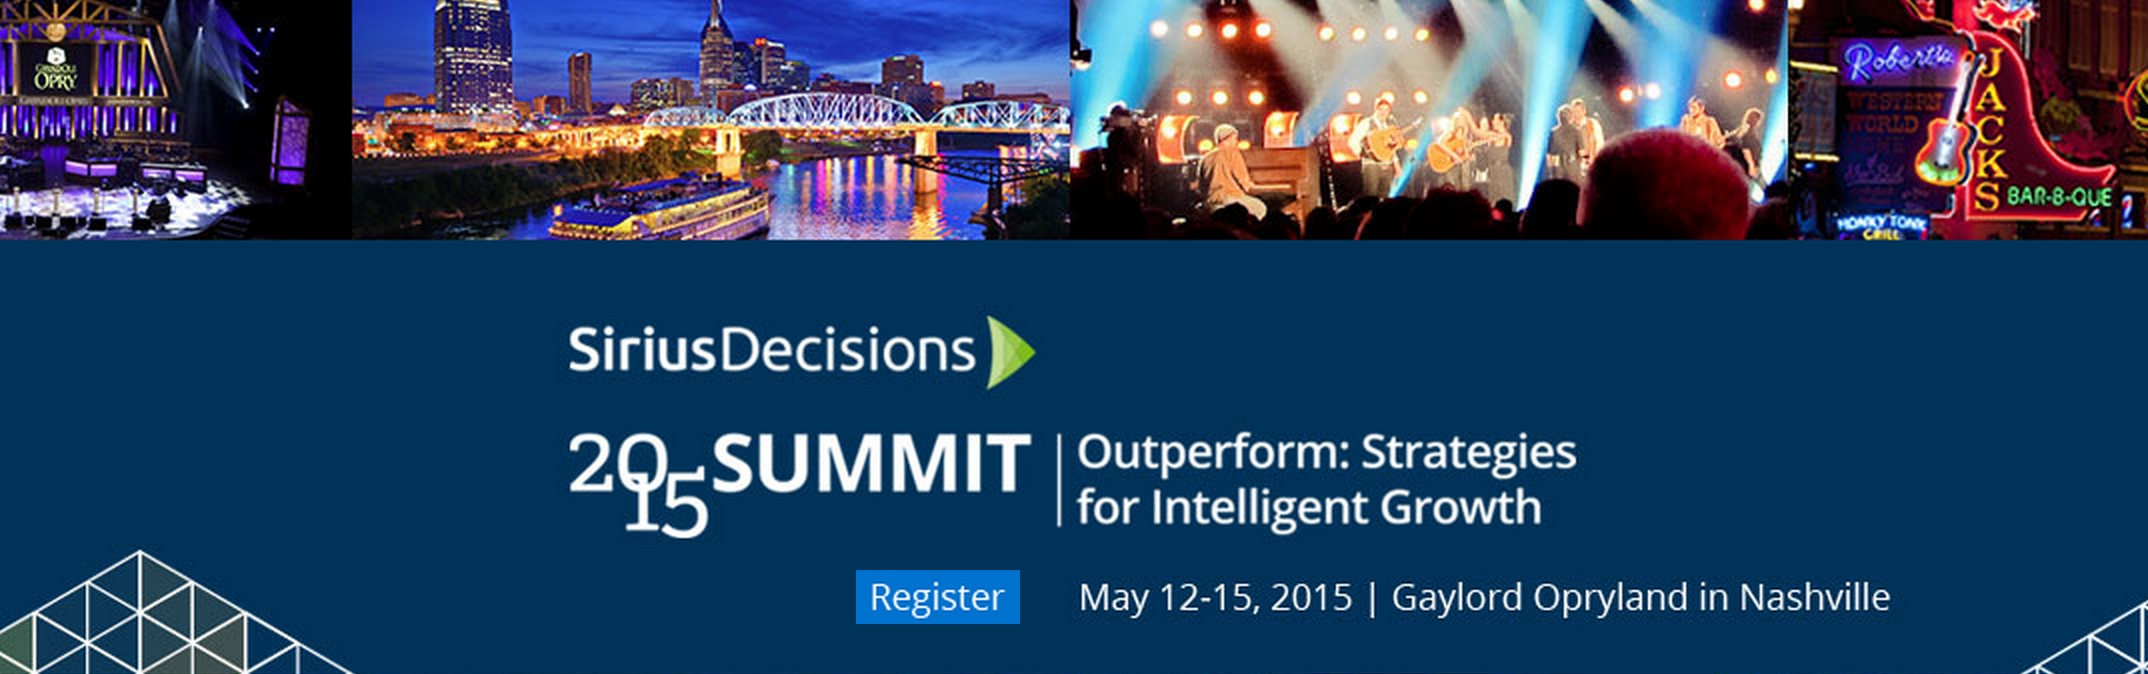 SiriusDecisions_Summit